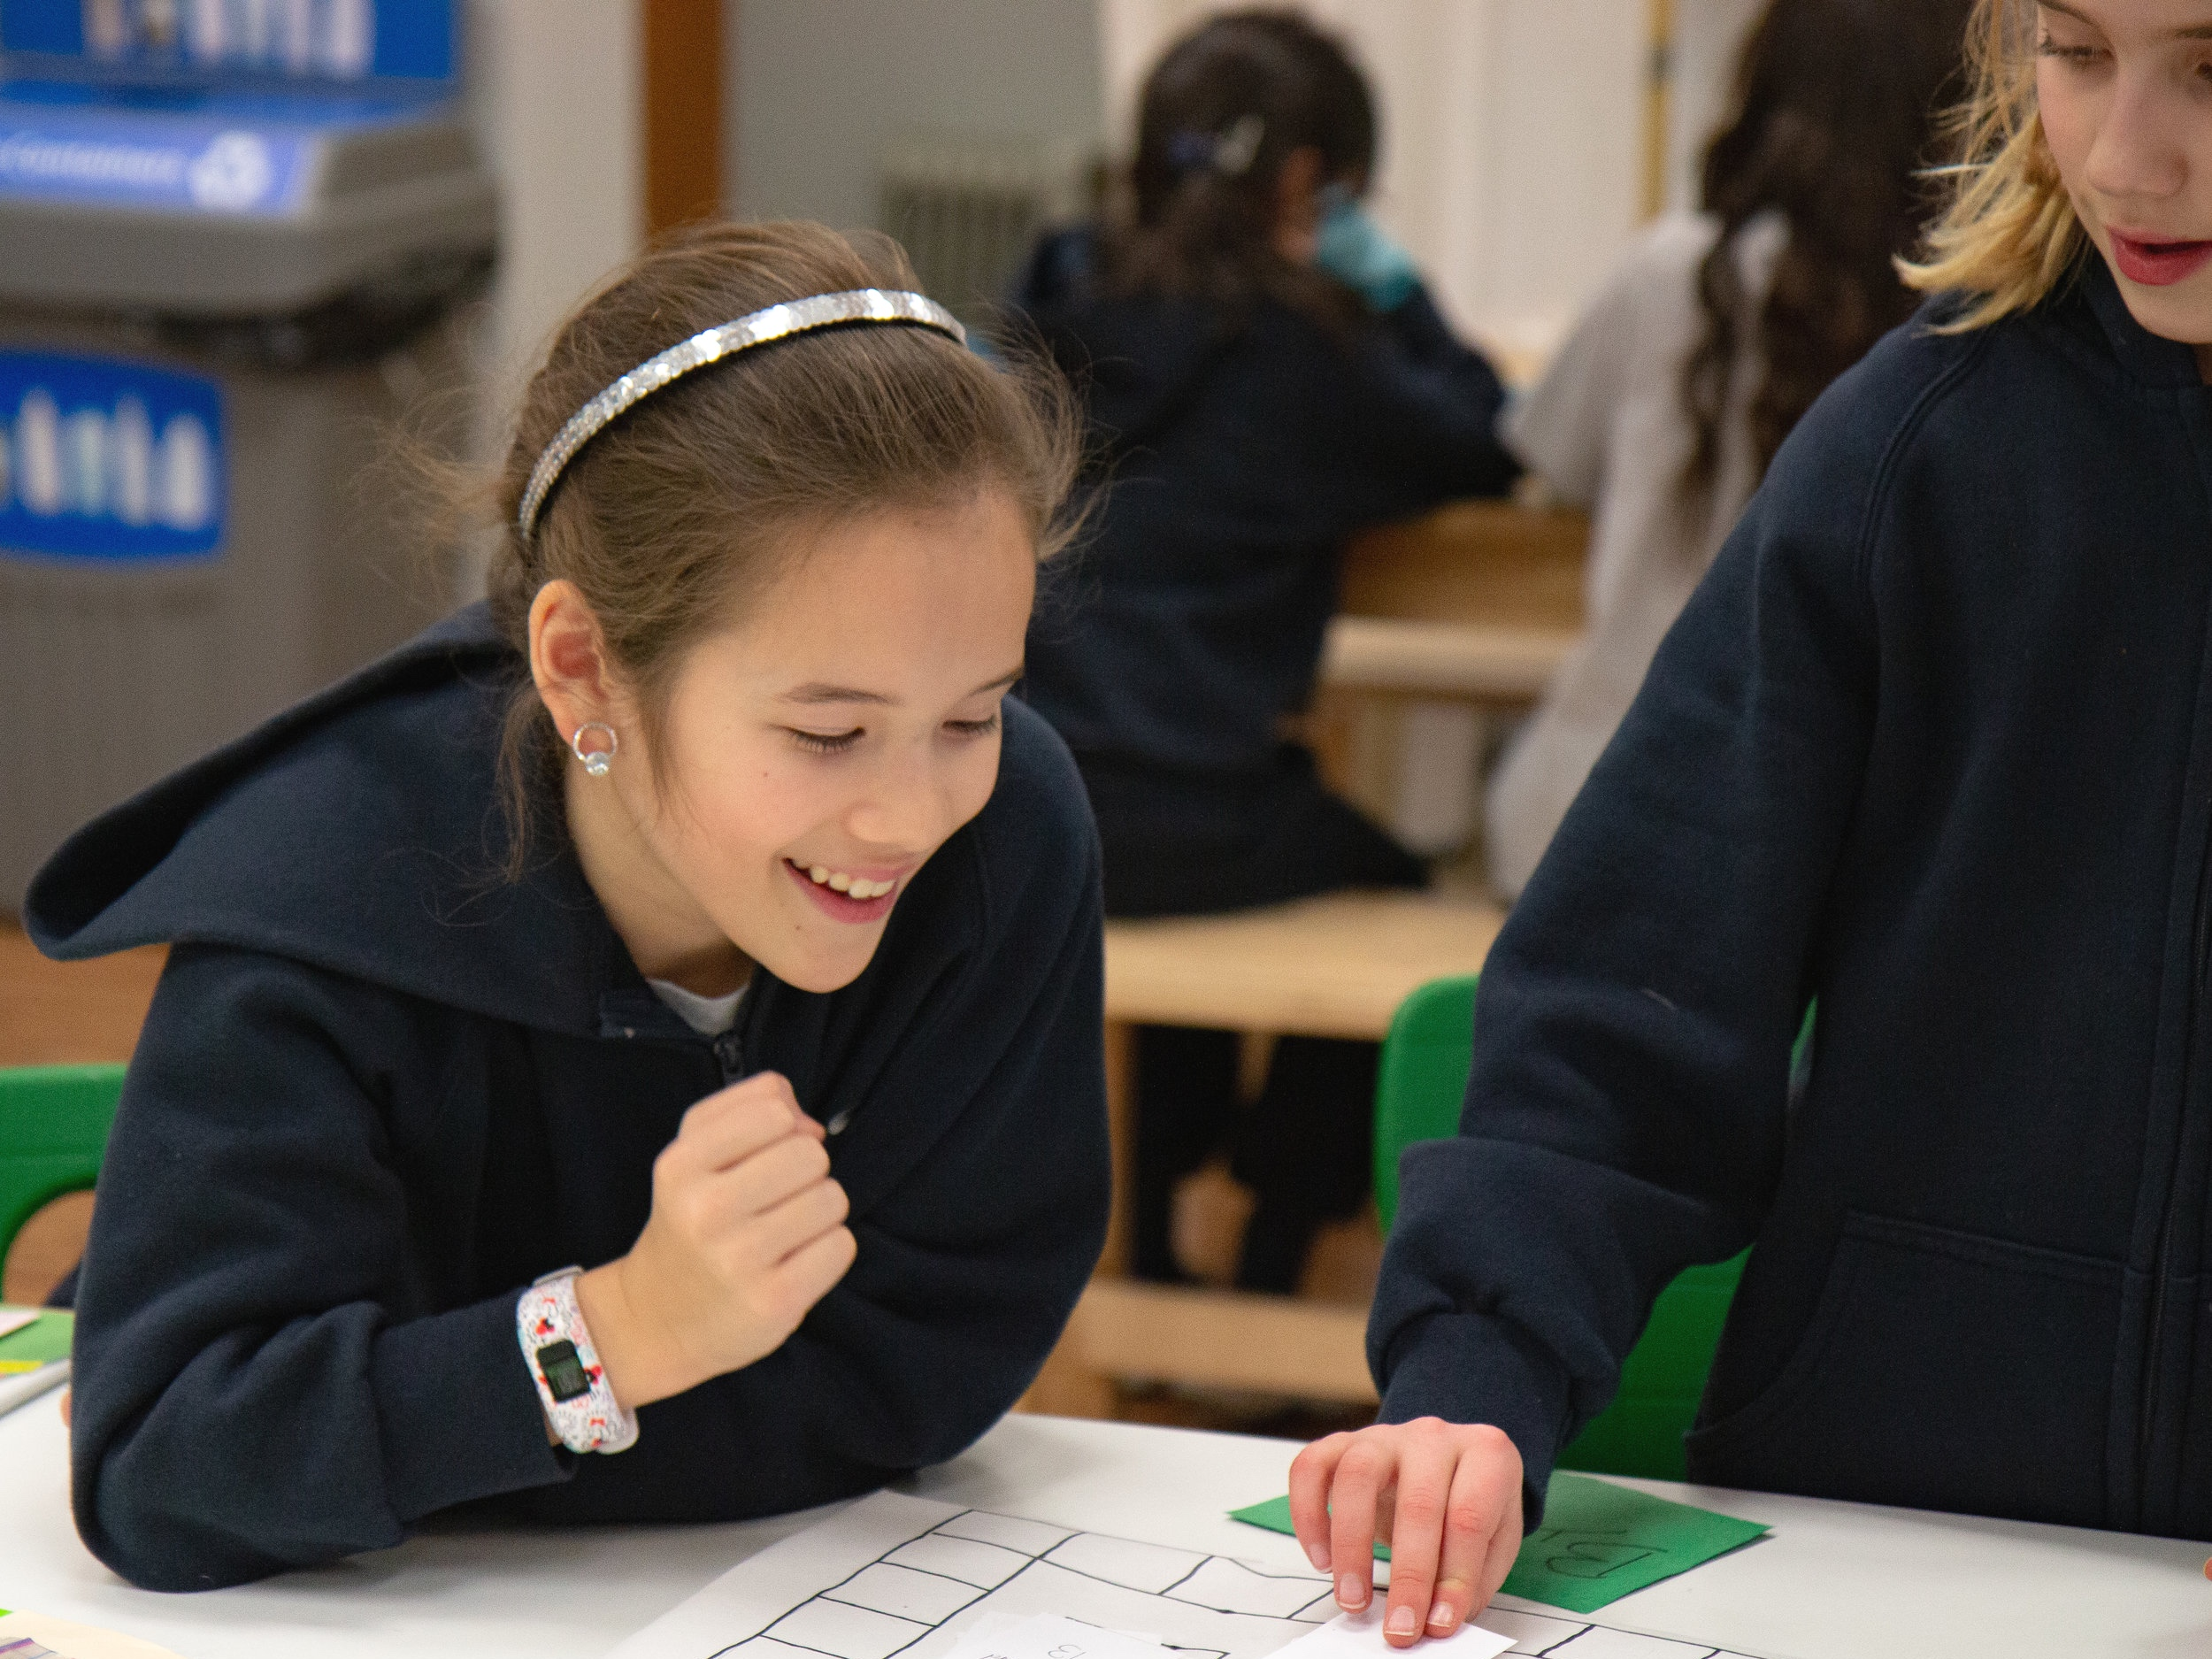 MIDDLE YEARS - GRADE 4 to GRADE 7One step closer to the Miniversity, this program is a stepping stone which allows students to experience a collaborative approach to learning.